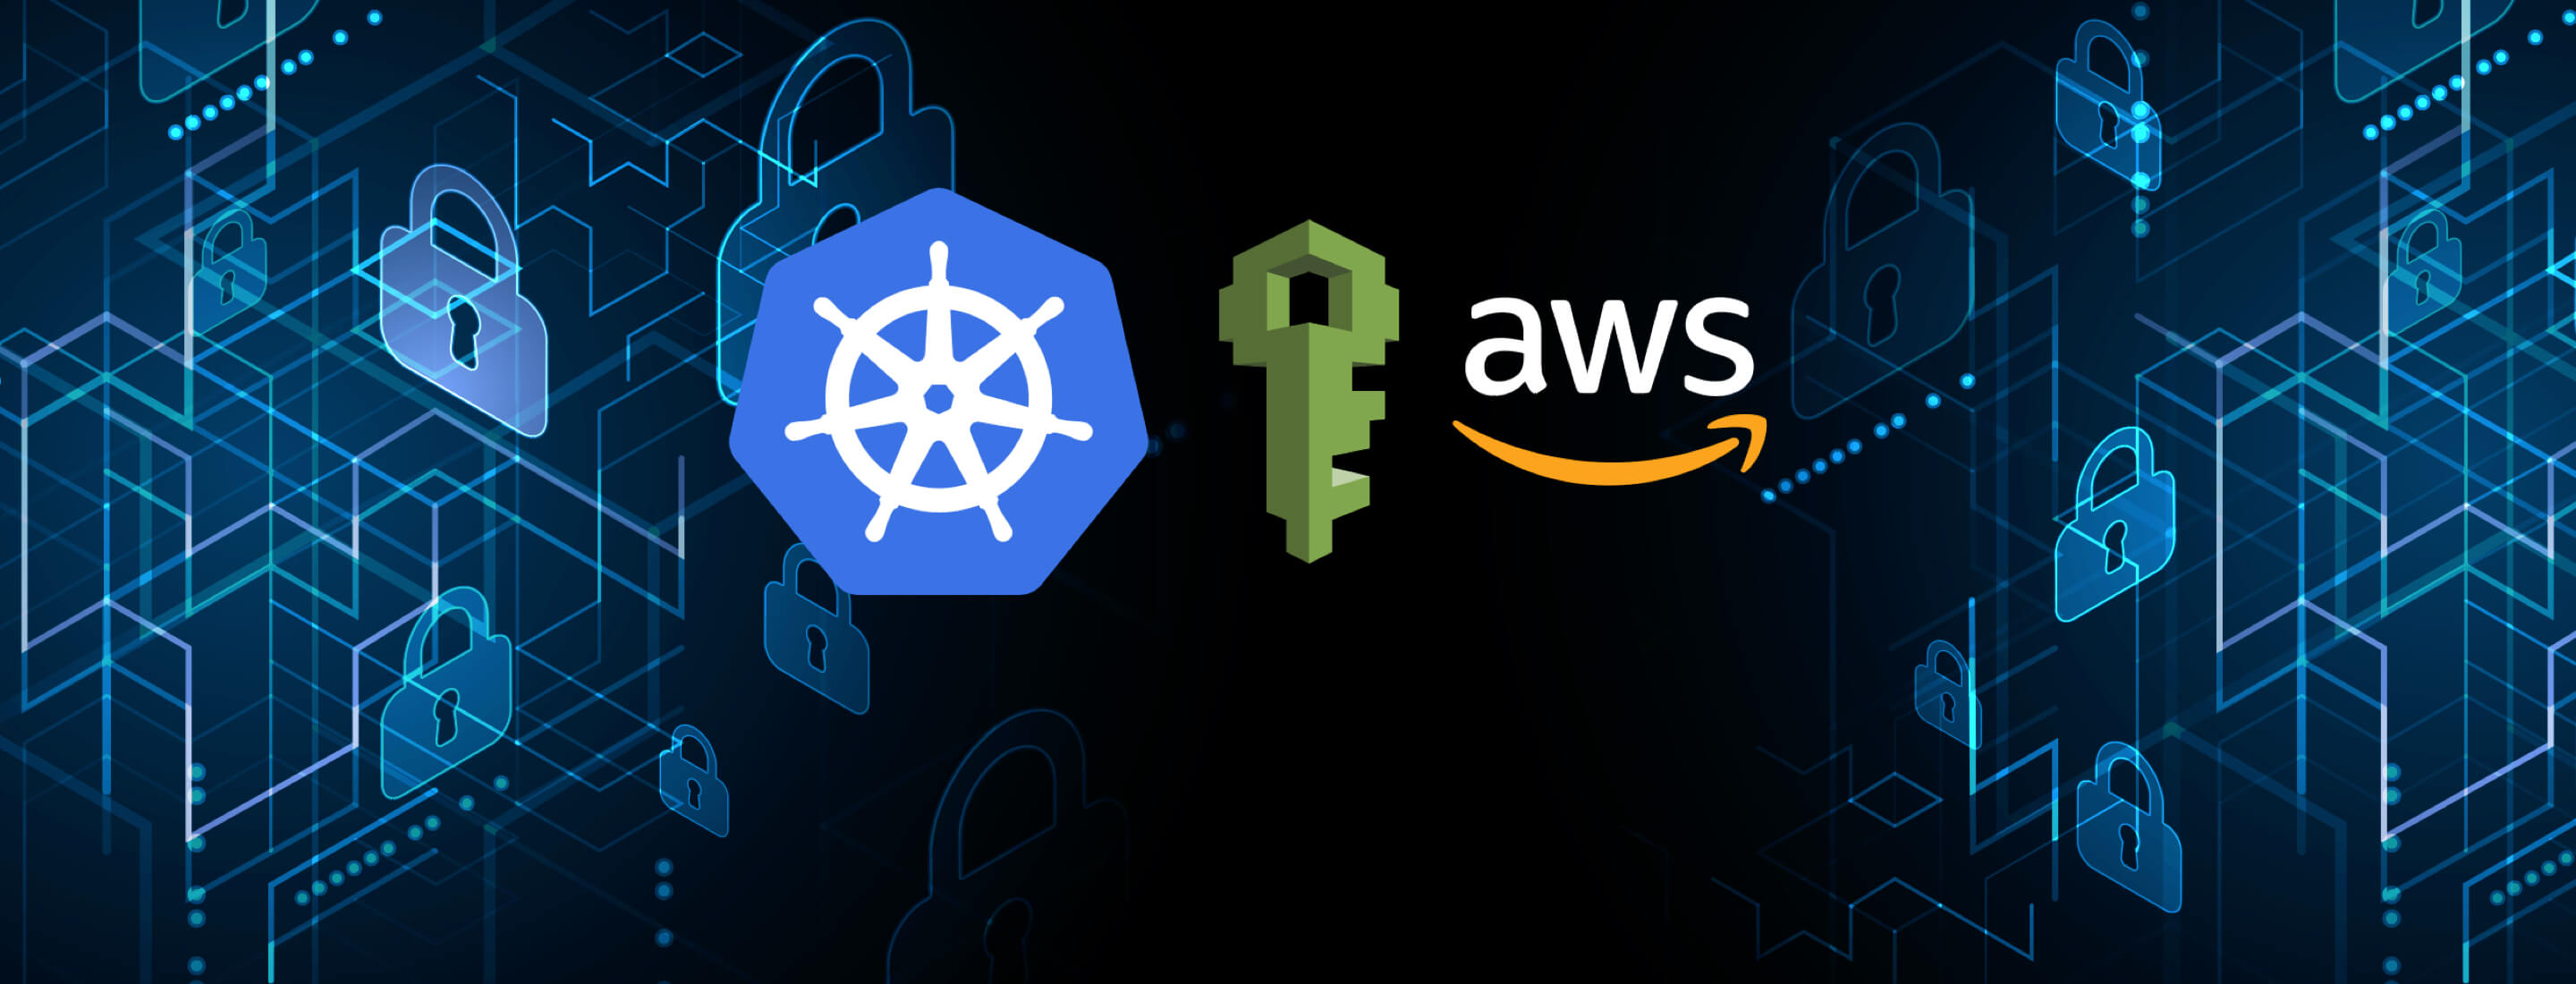 BM-iam-access-in-kubernetes-the-aws-security-problem2